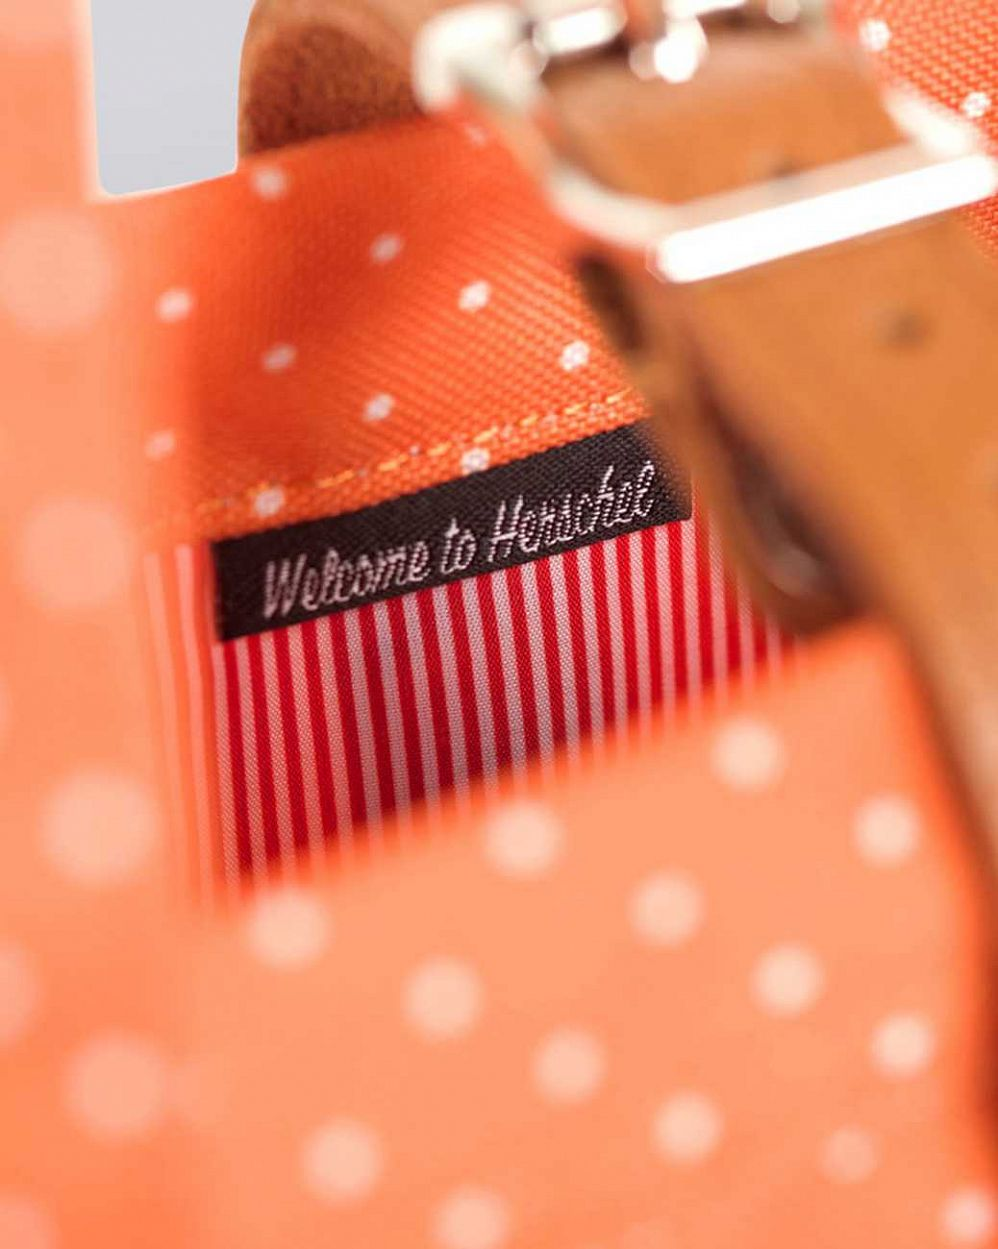 Сумка herschel market orange polka dot купить в интернете